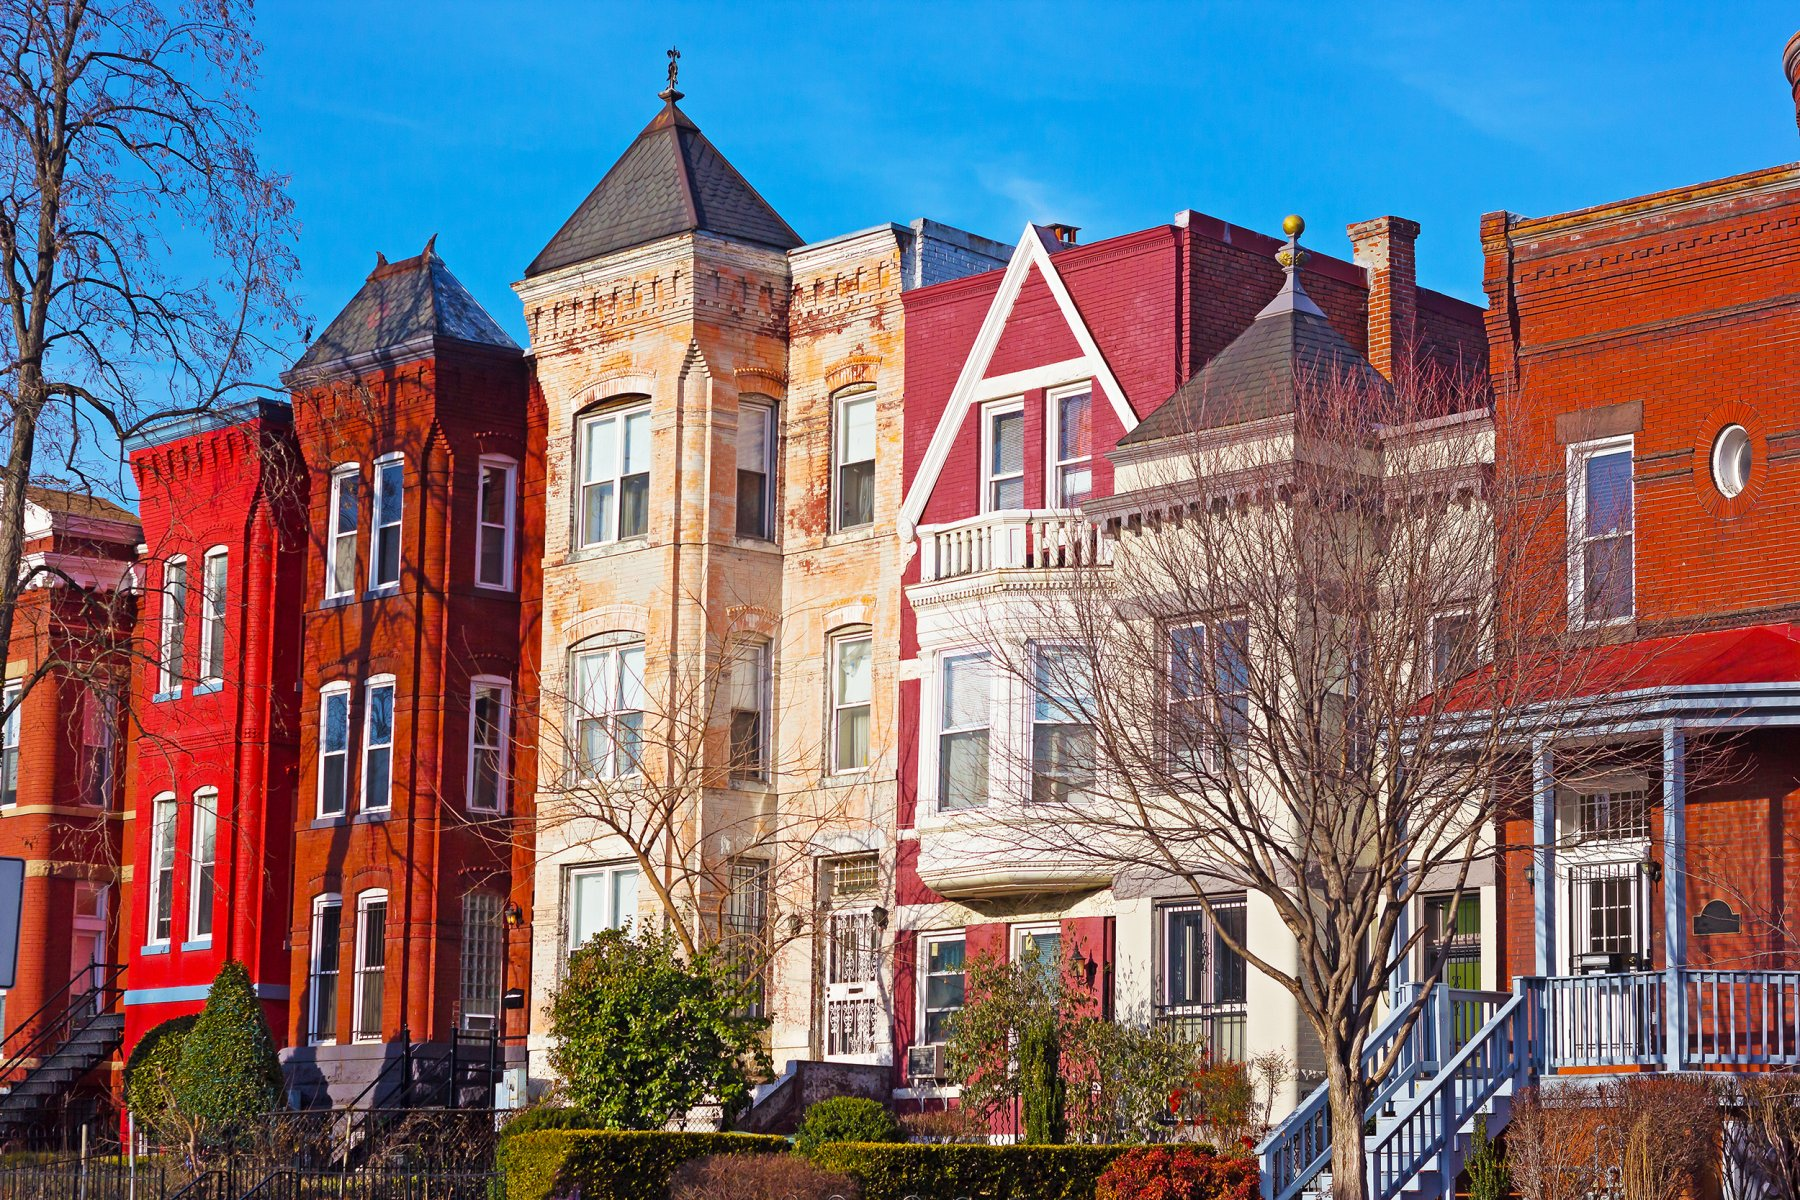 Sell my house fast baltimore maryland we buy houses in baltimore sell my house fast baltimore maryland we buy houses in baltimore prosperity park properties llc xflitez Choice Image